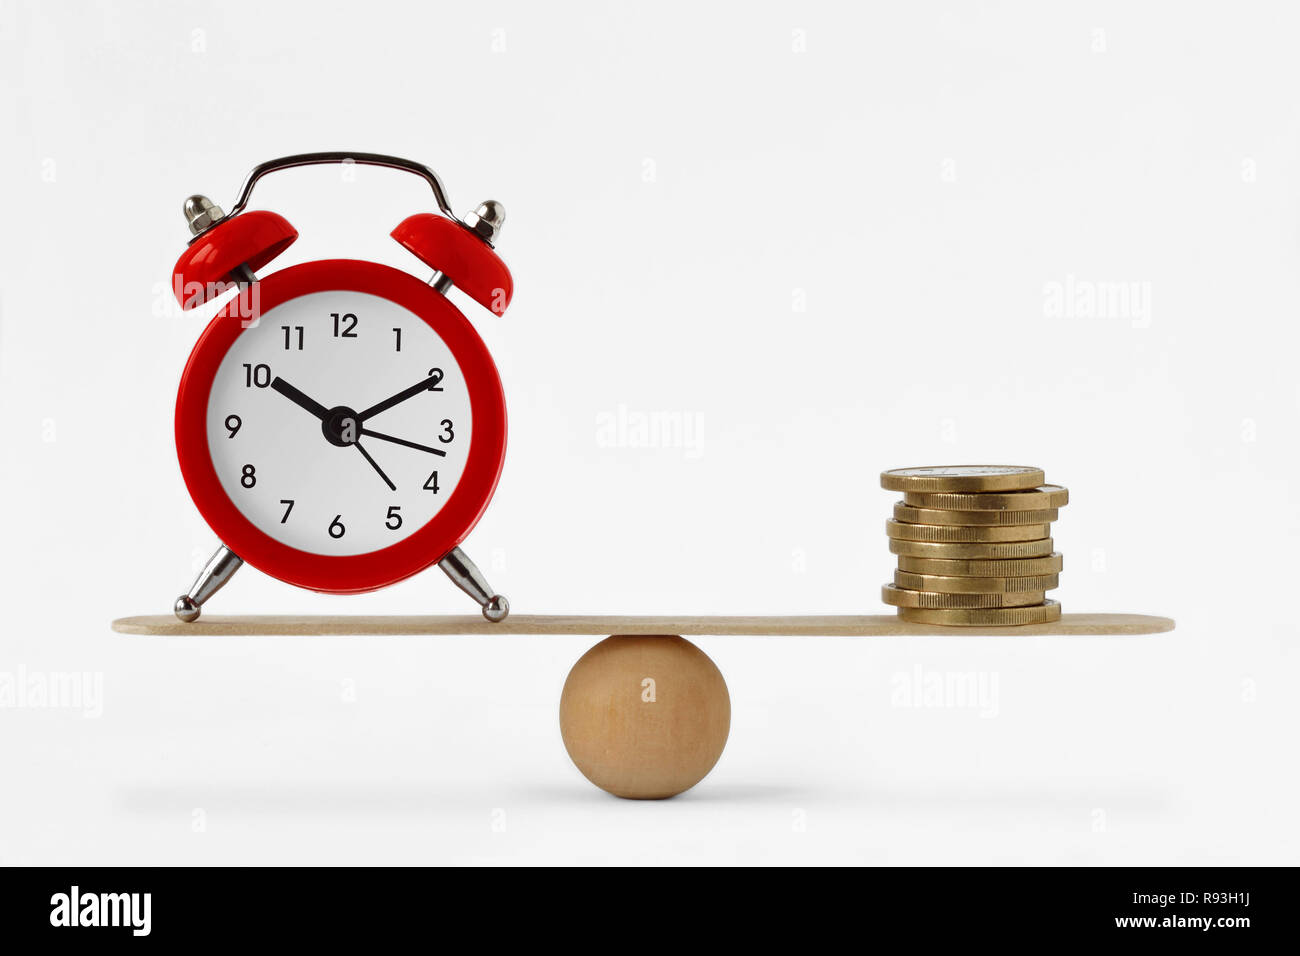 Clock and money on scales - Balance between time and money, time is money concept - Stock Image